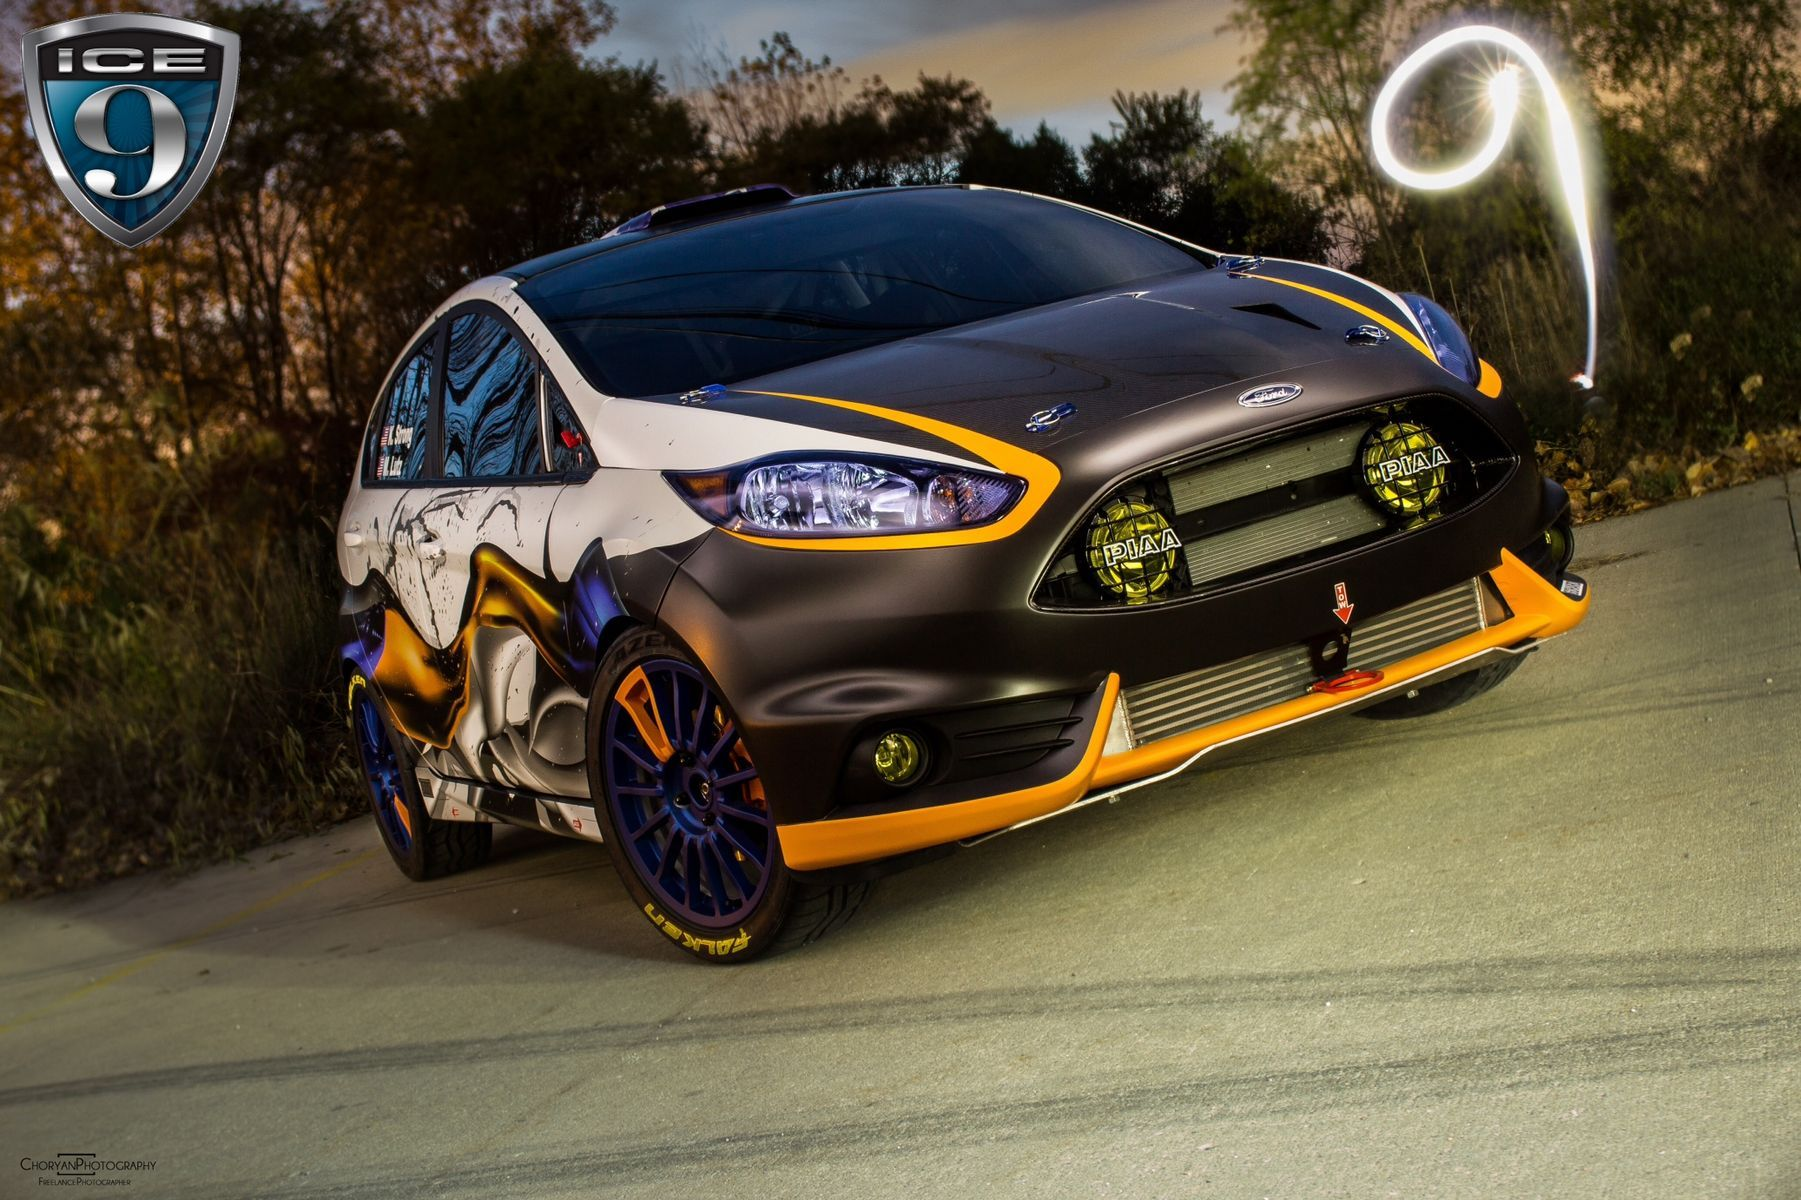 2014 Ford Fiesta | 2014 Fiesta ST Rally Edition